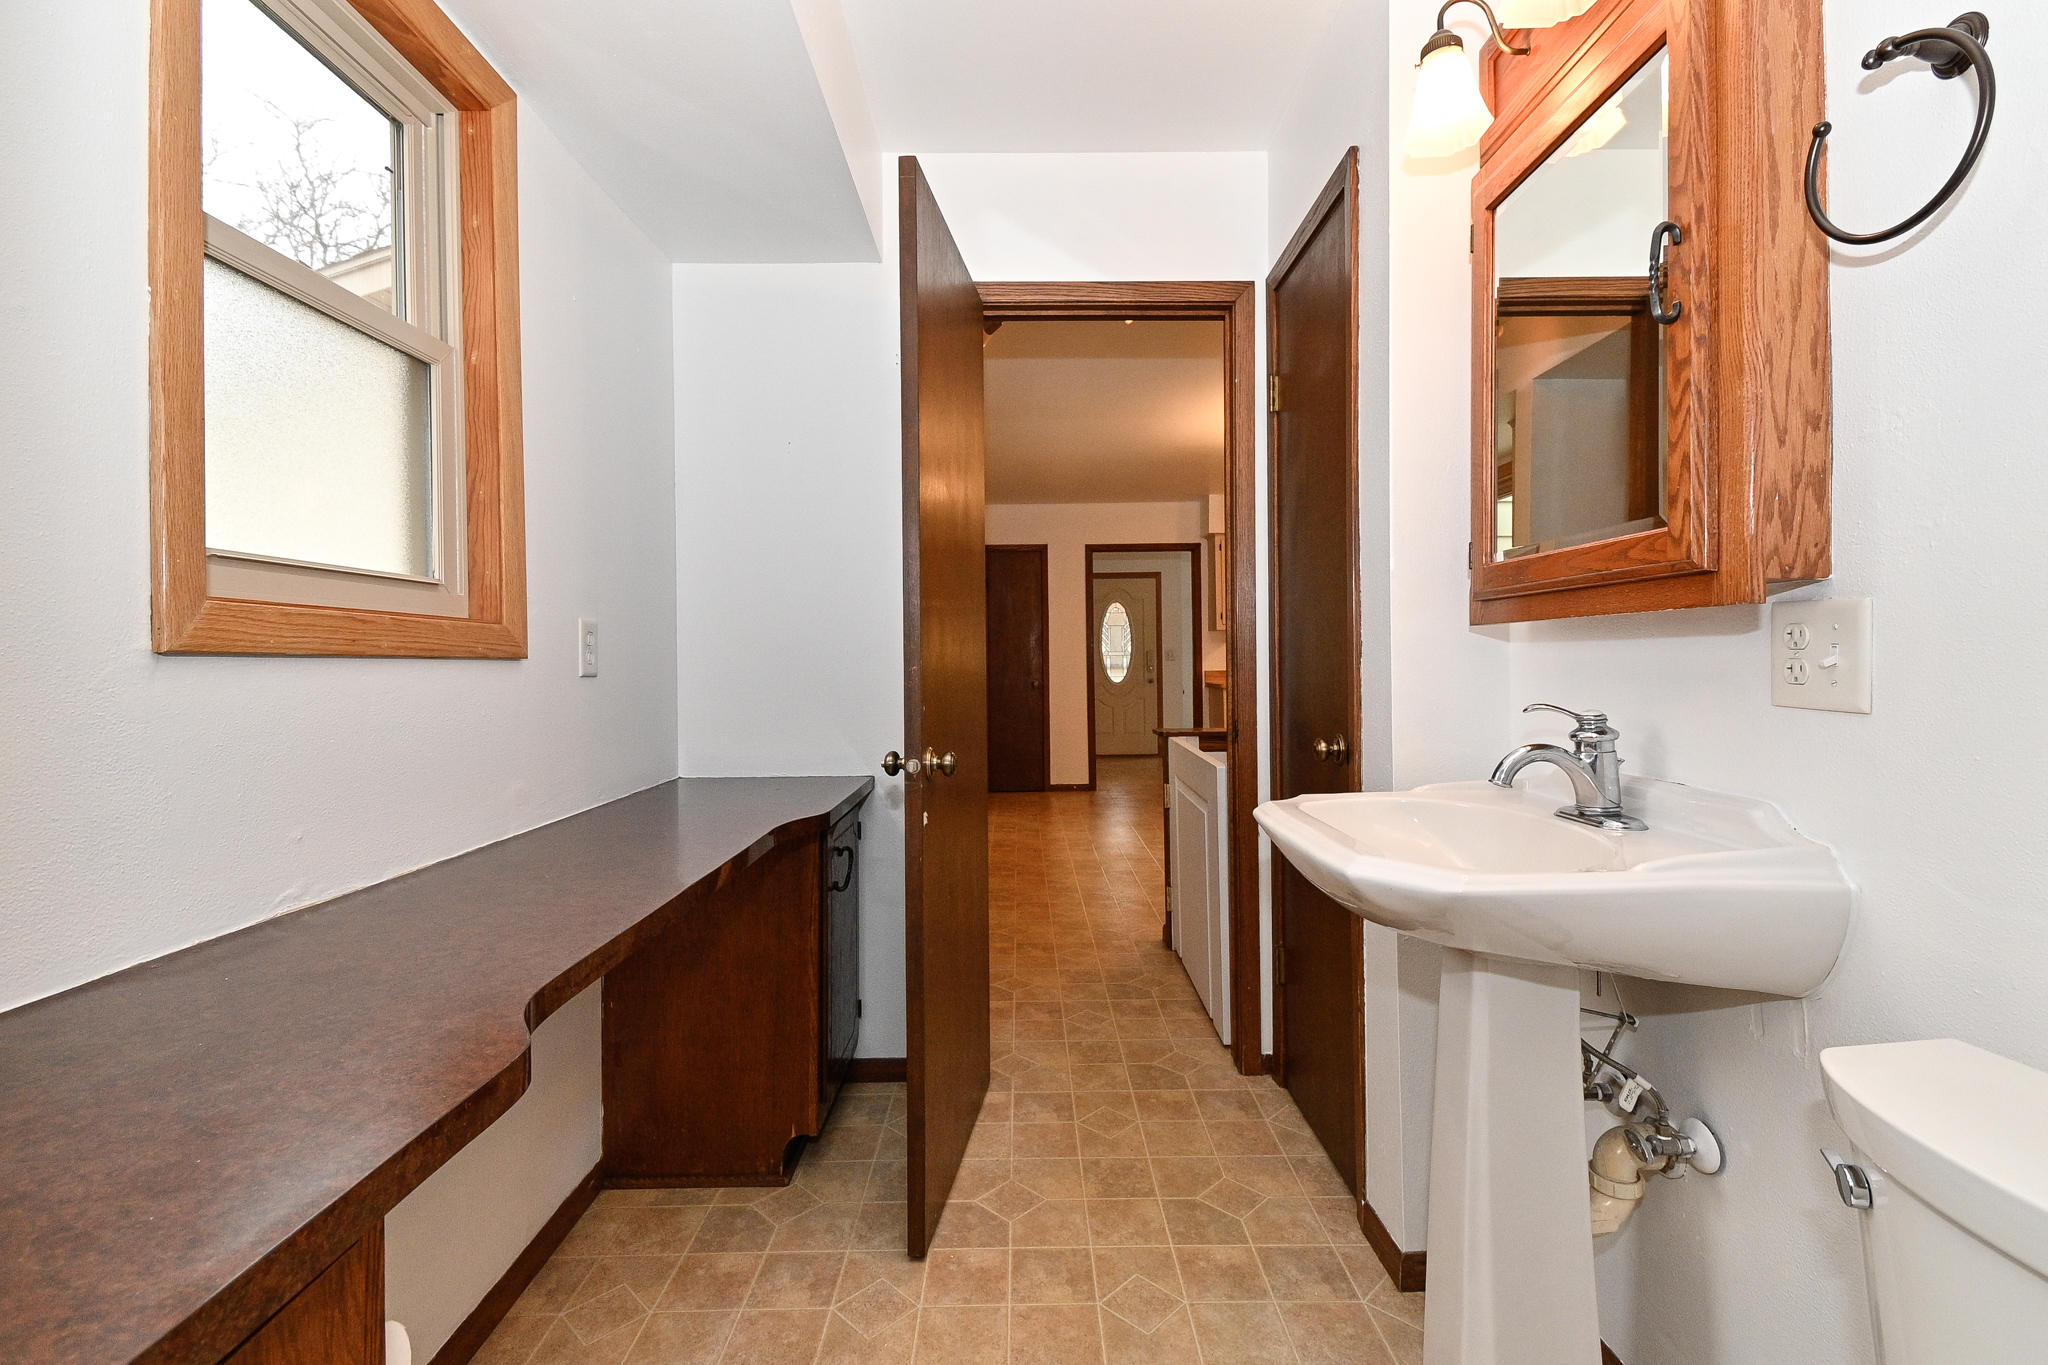 Powder Room off Master and Kitchen